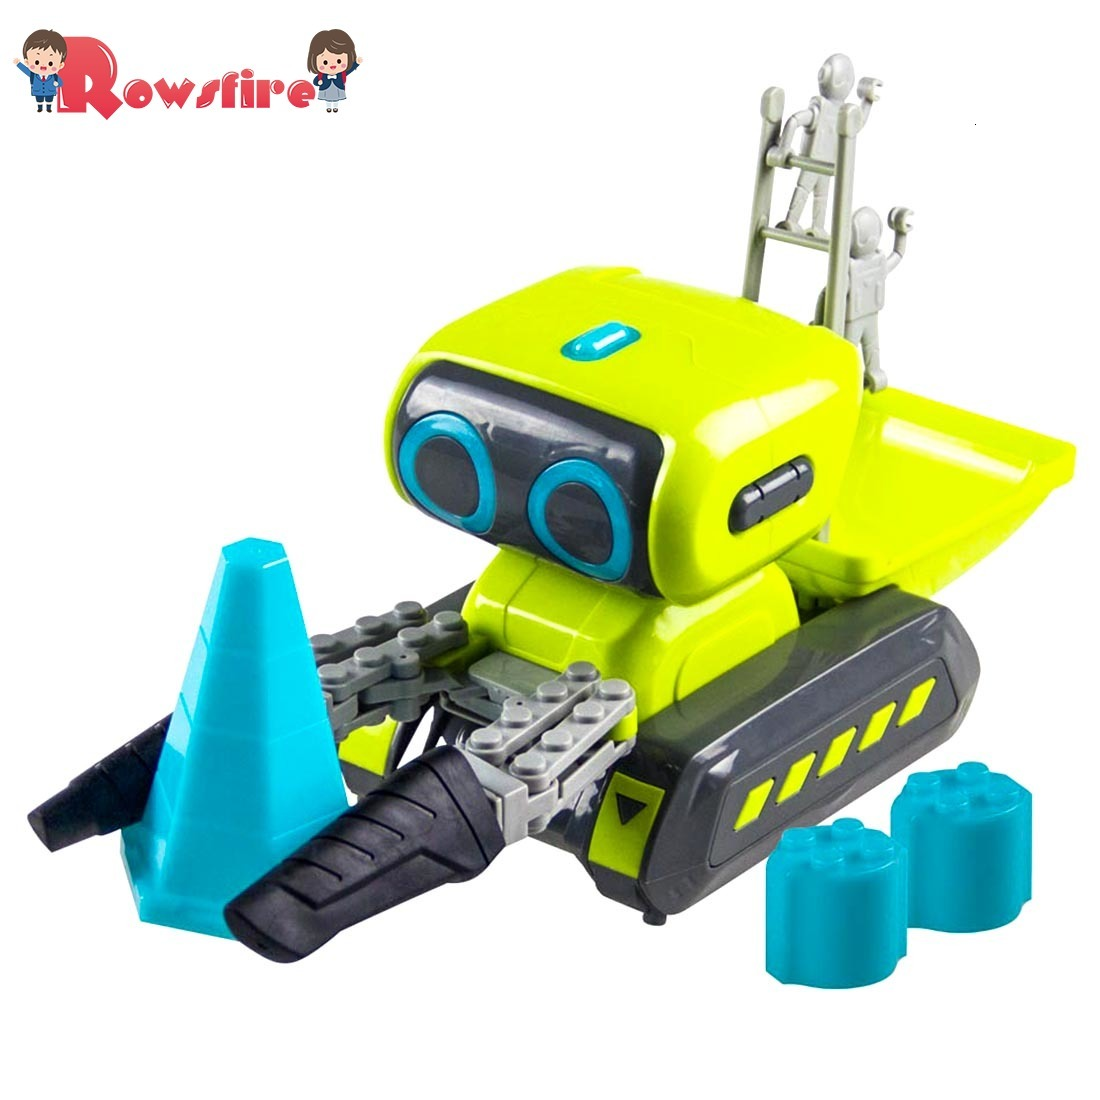 2019 New Recommend 1 Pcs Smart Programming RC Robot Engineering Forklift RC Indoor Toy With Light And Music For Children